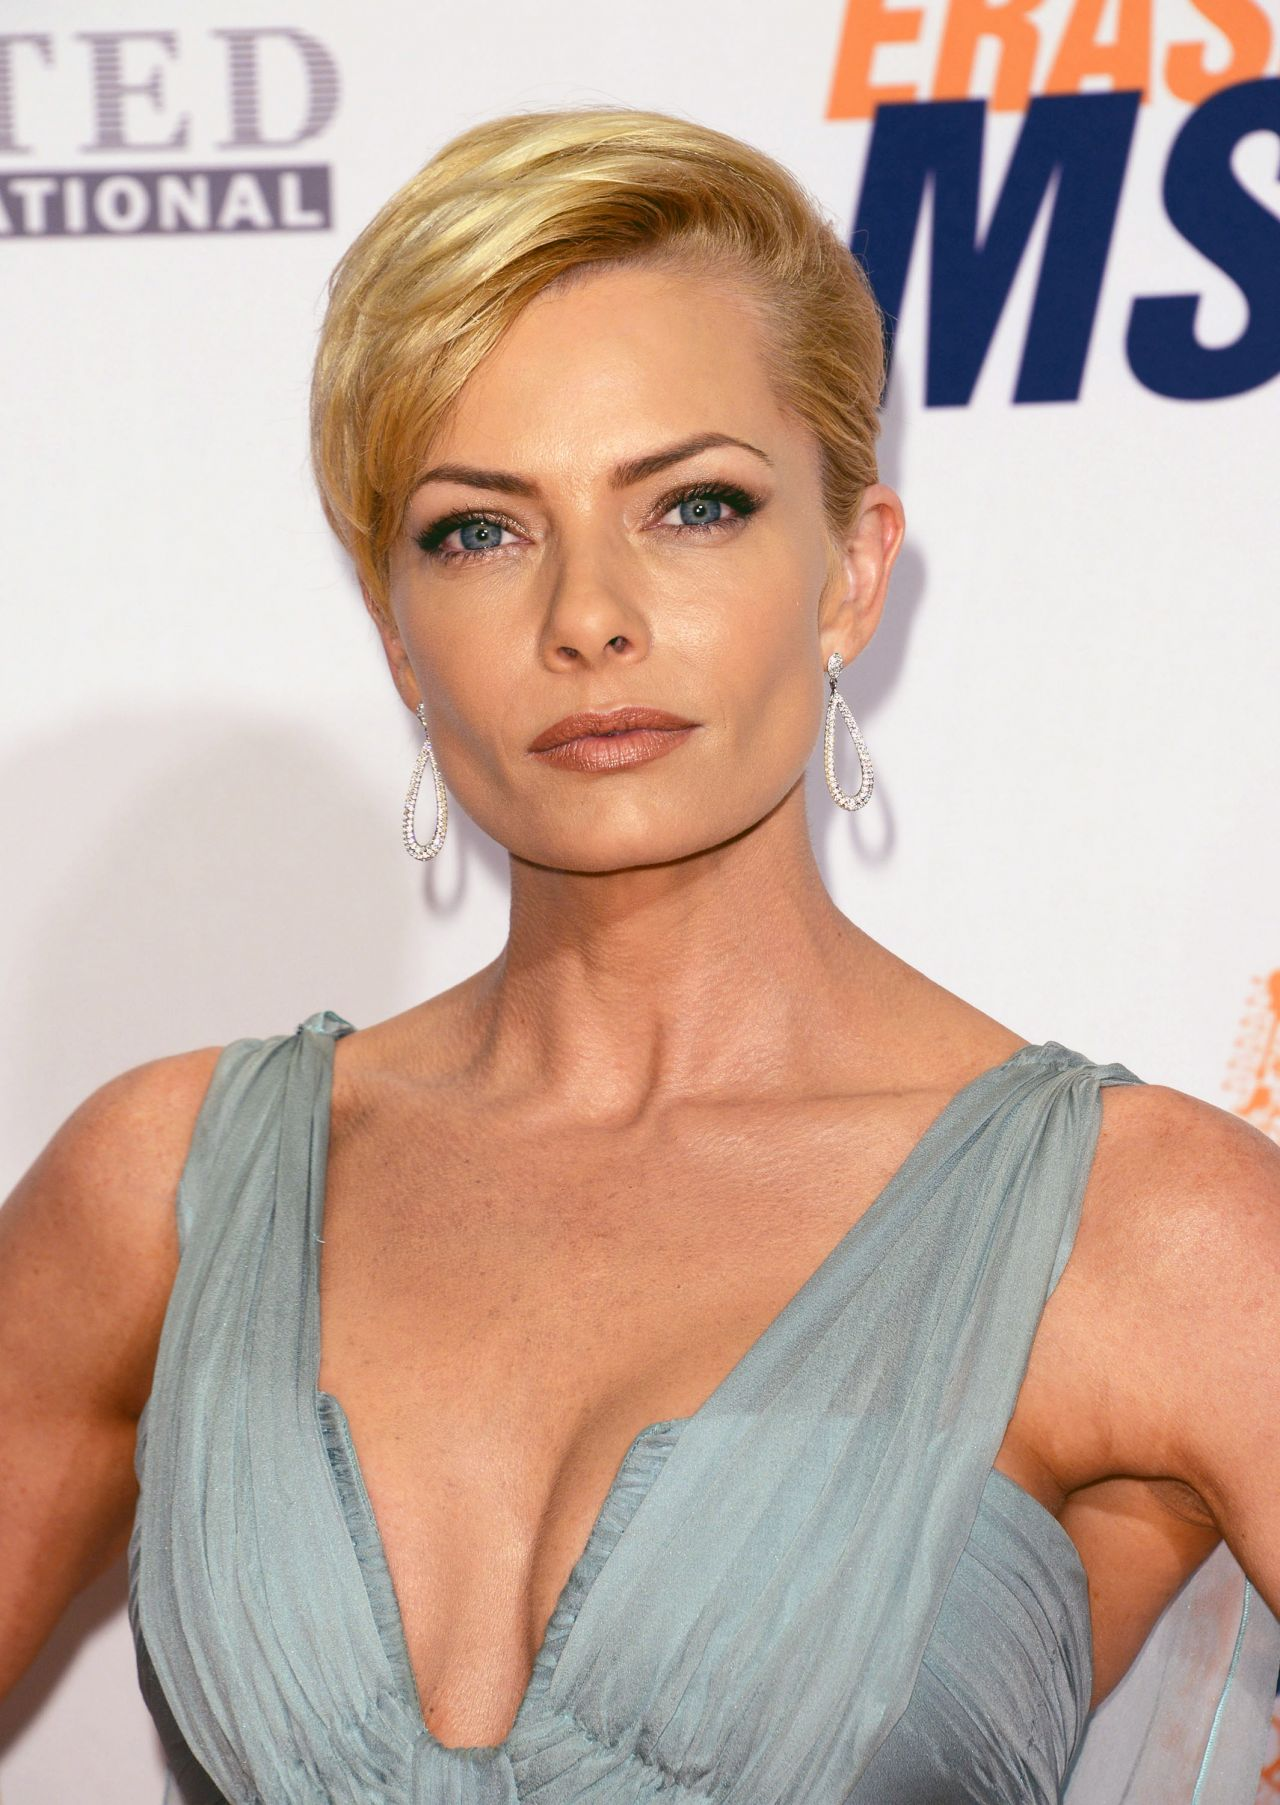 Pictures Jaime Pressly nudes (33 foto and video), Tits, Cleavage, Selfie, butt 2017